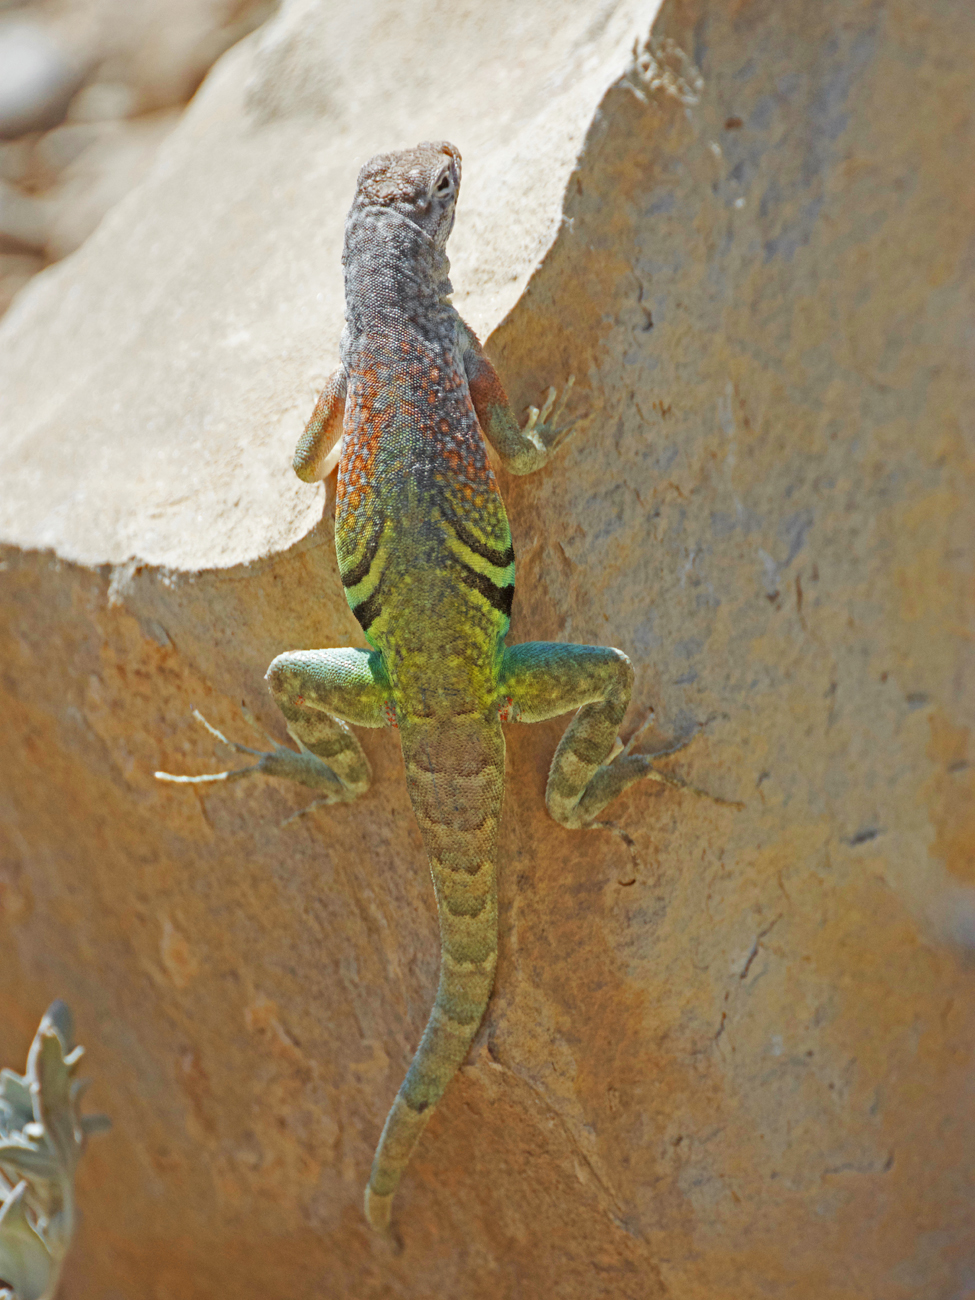 View of the back of a greater earless lizard clinging to a rock on the Ernst Tinaja trail in Big Bend National Park